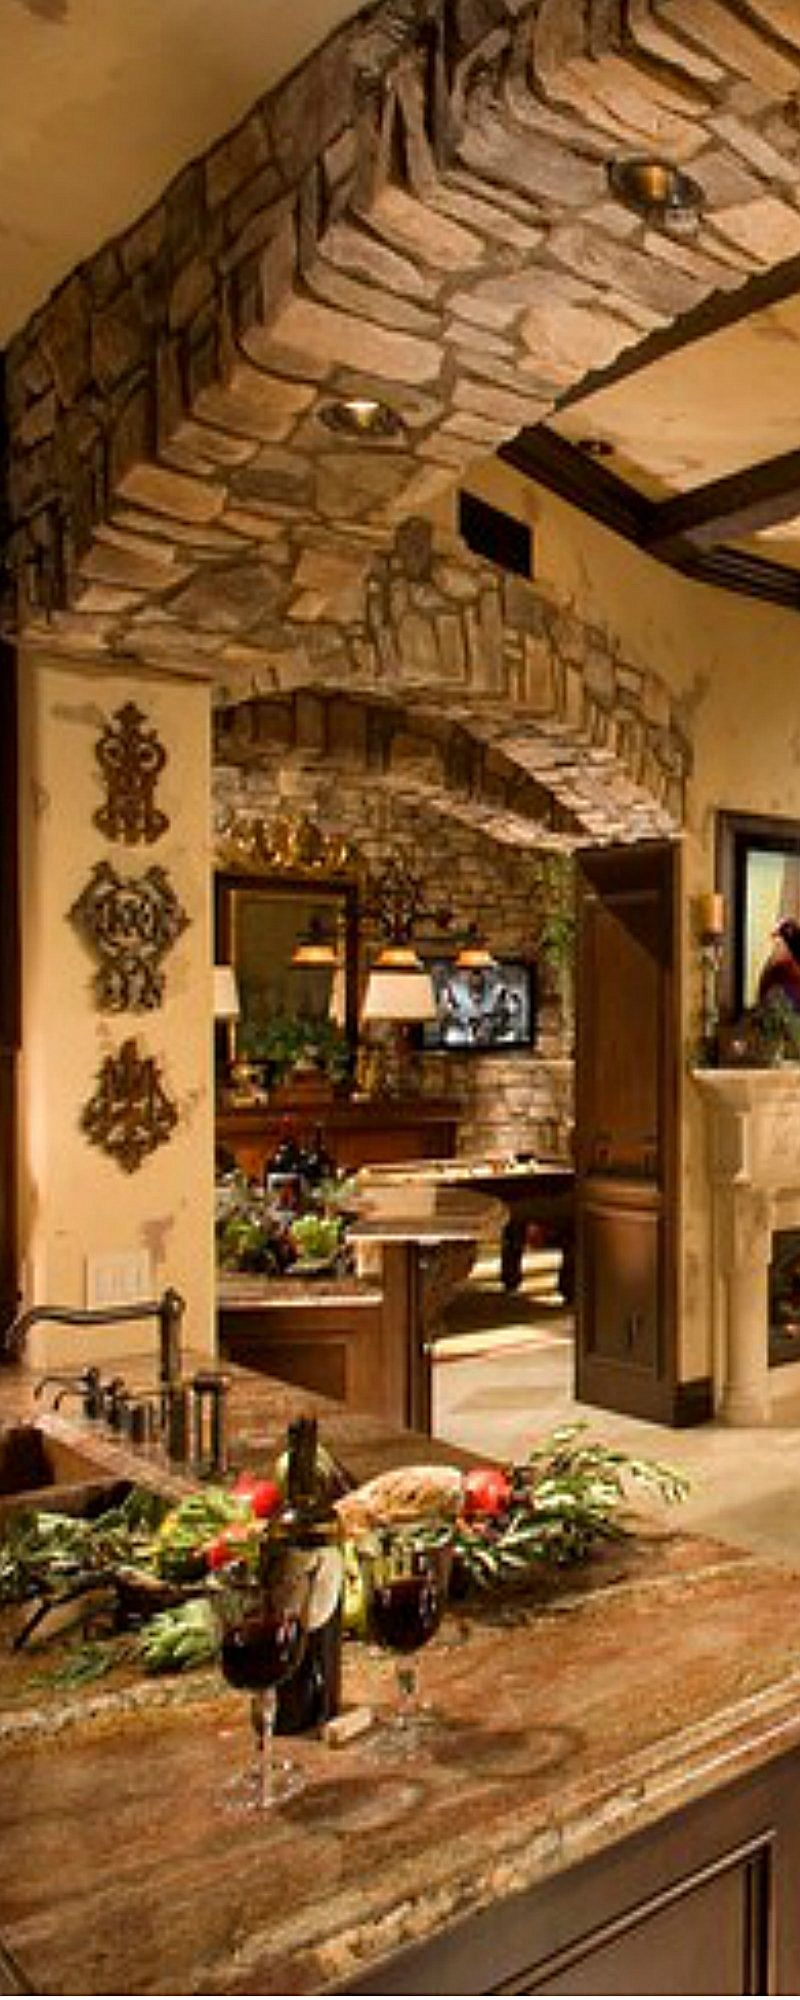 Arches With Images Italian Kitchen Design Tuscany Style